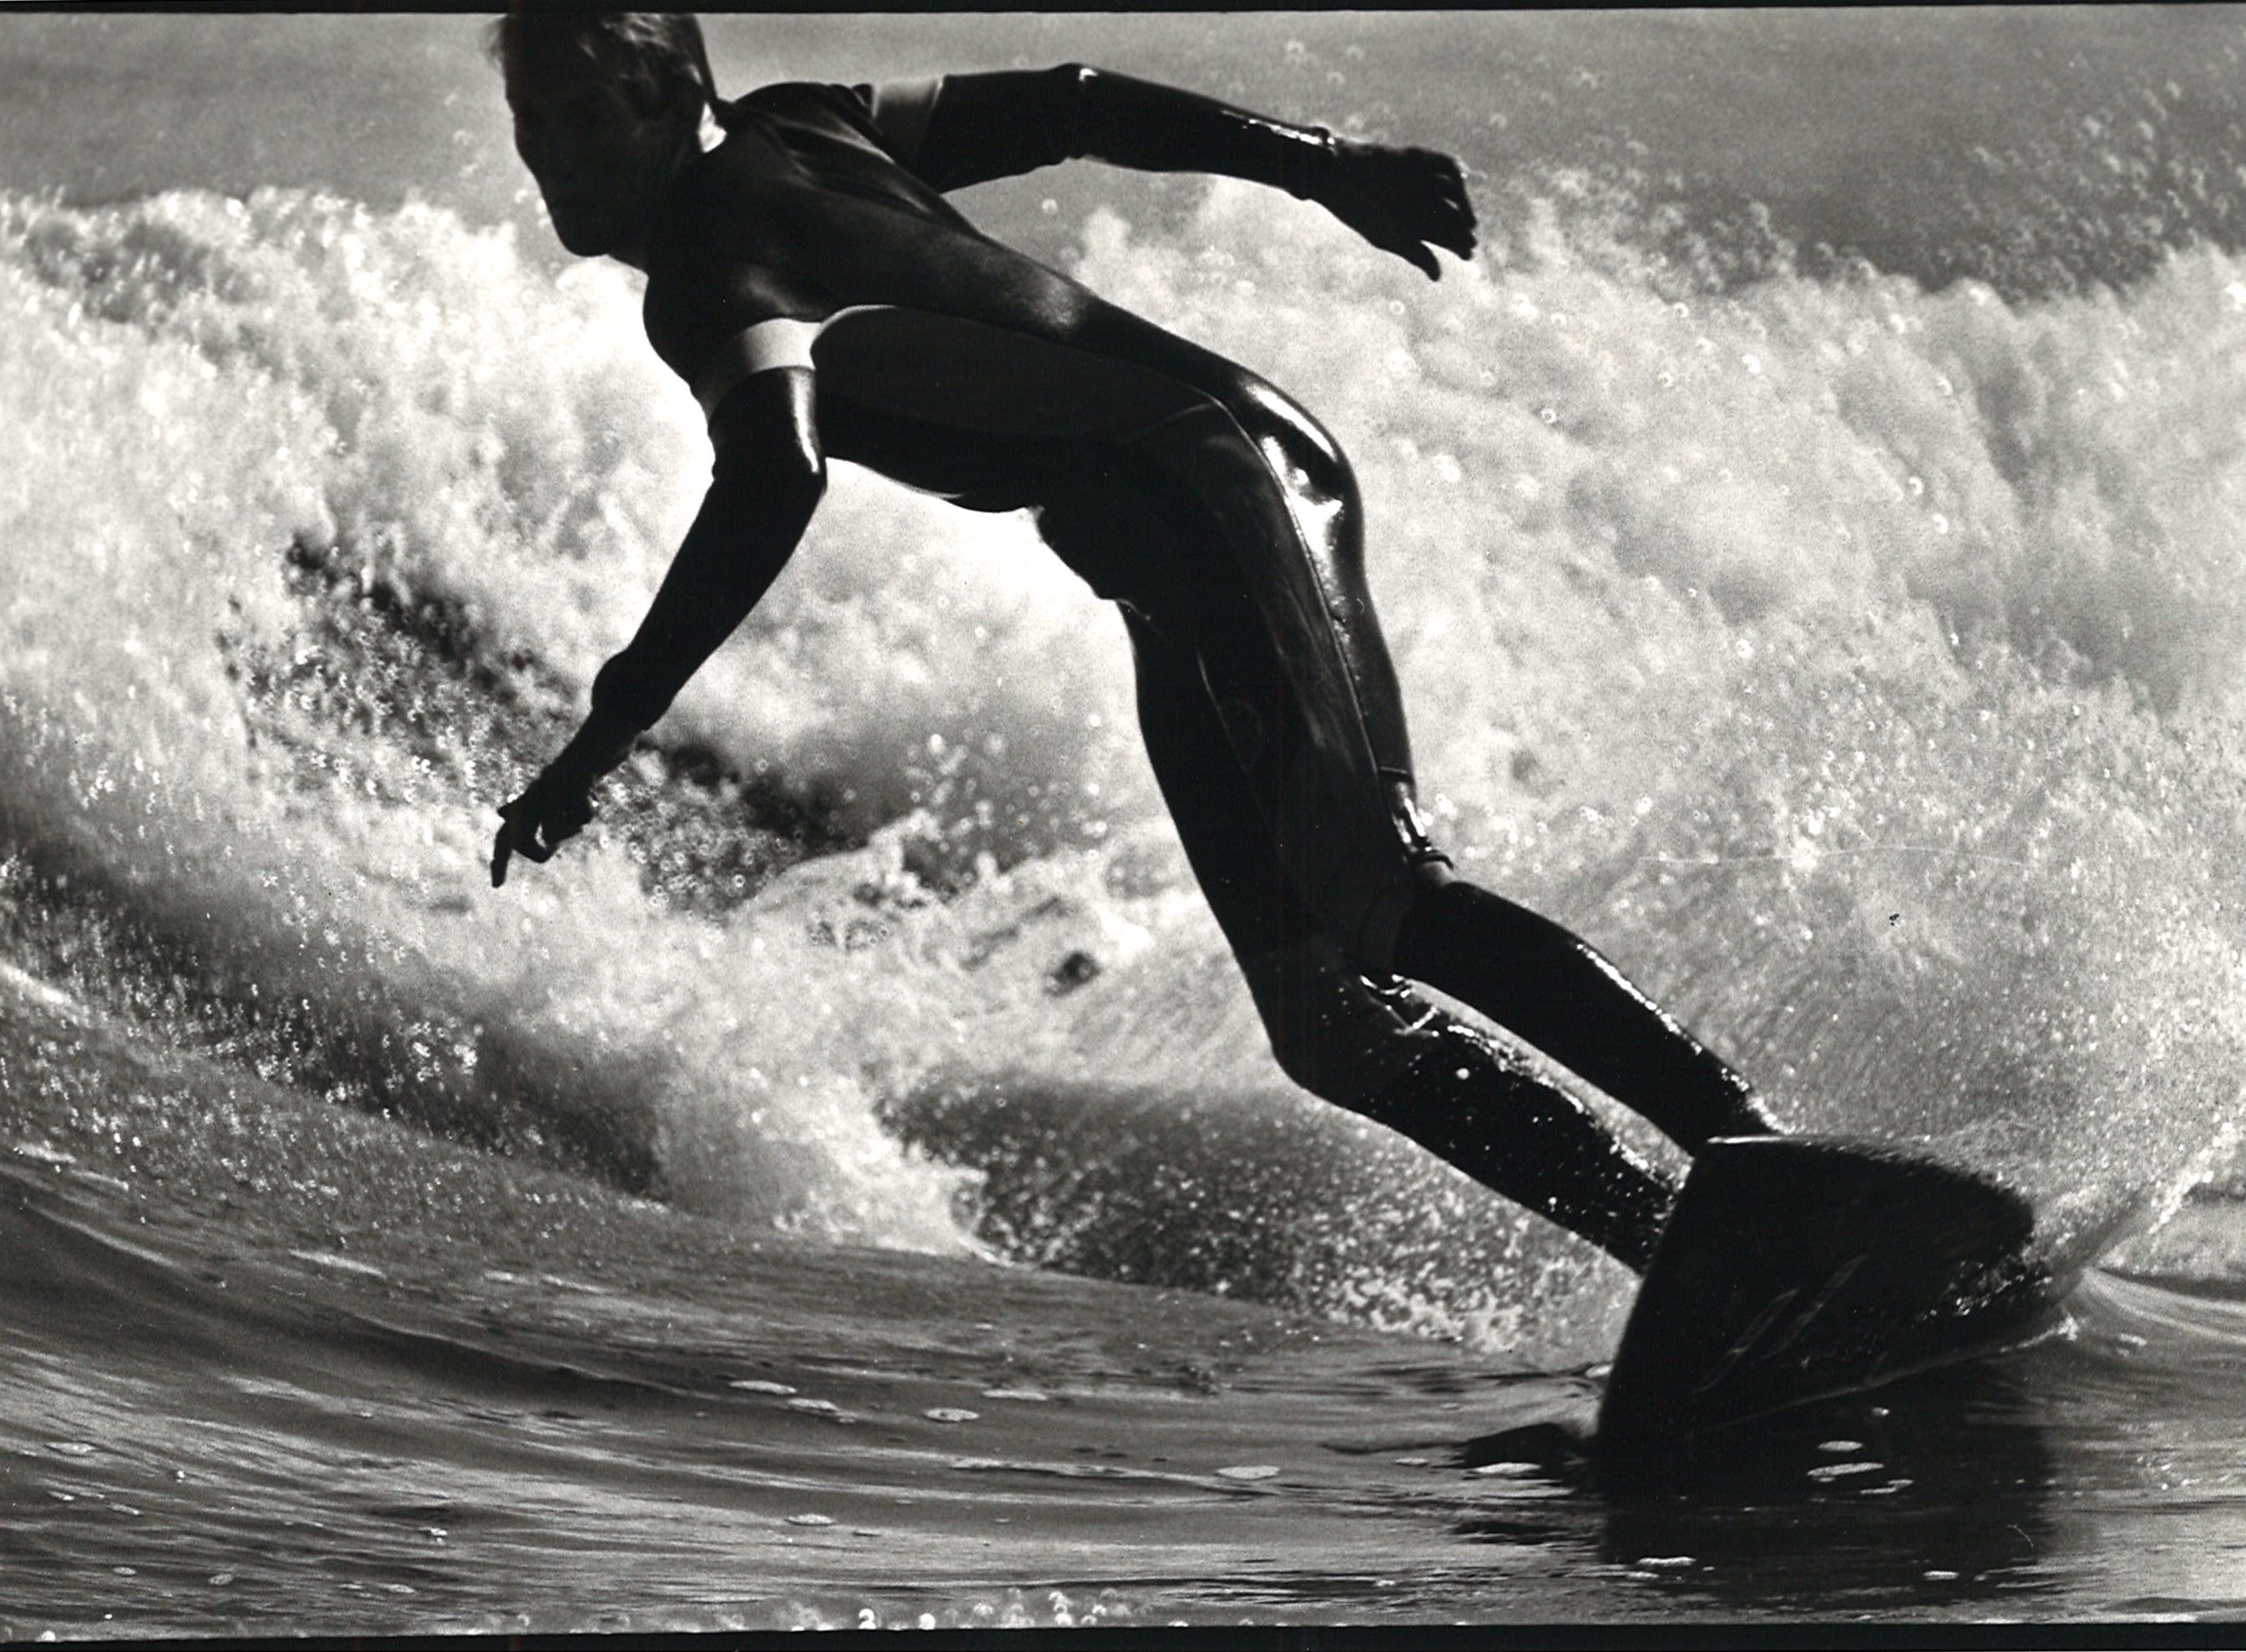 A surfer on Mustang Island in Corpus Christi in 1984.